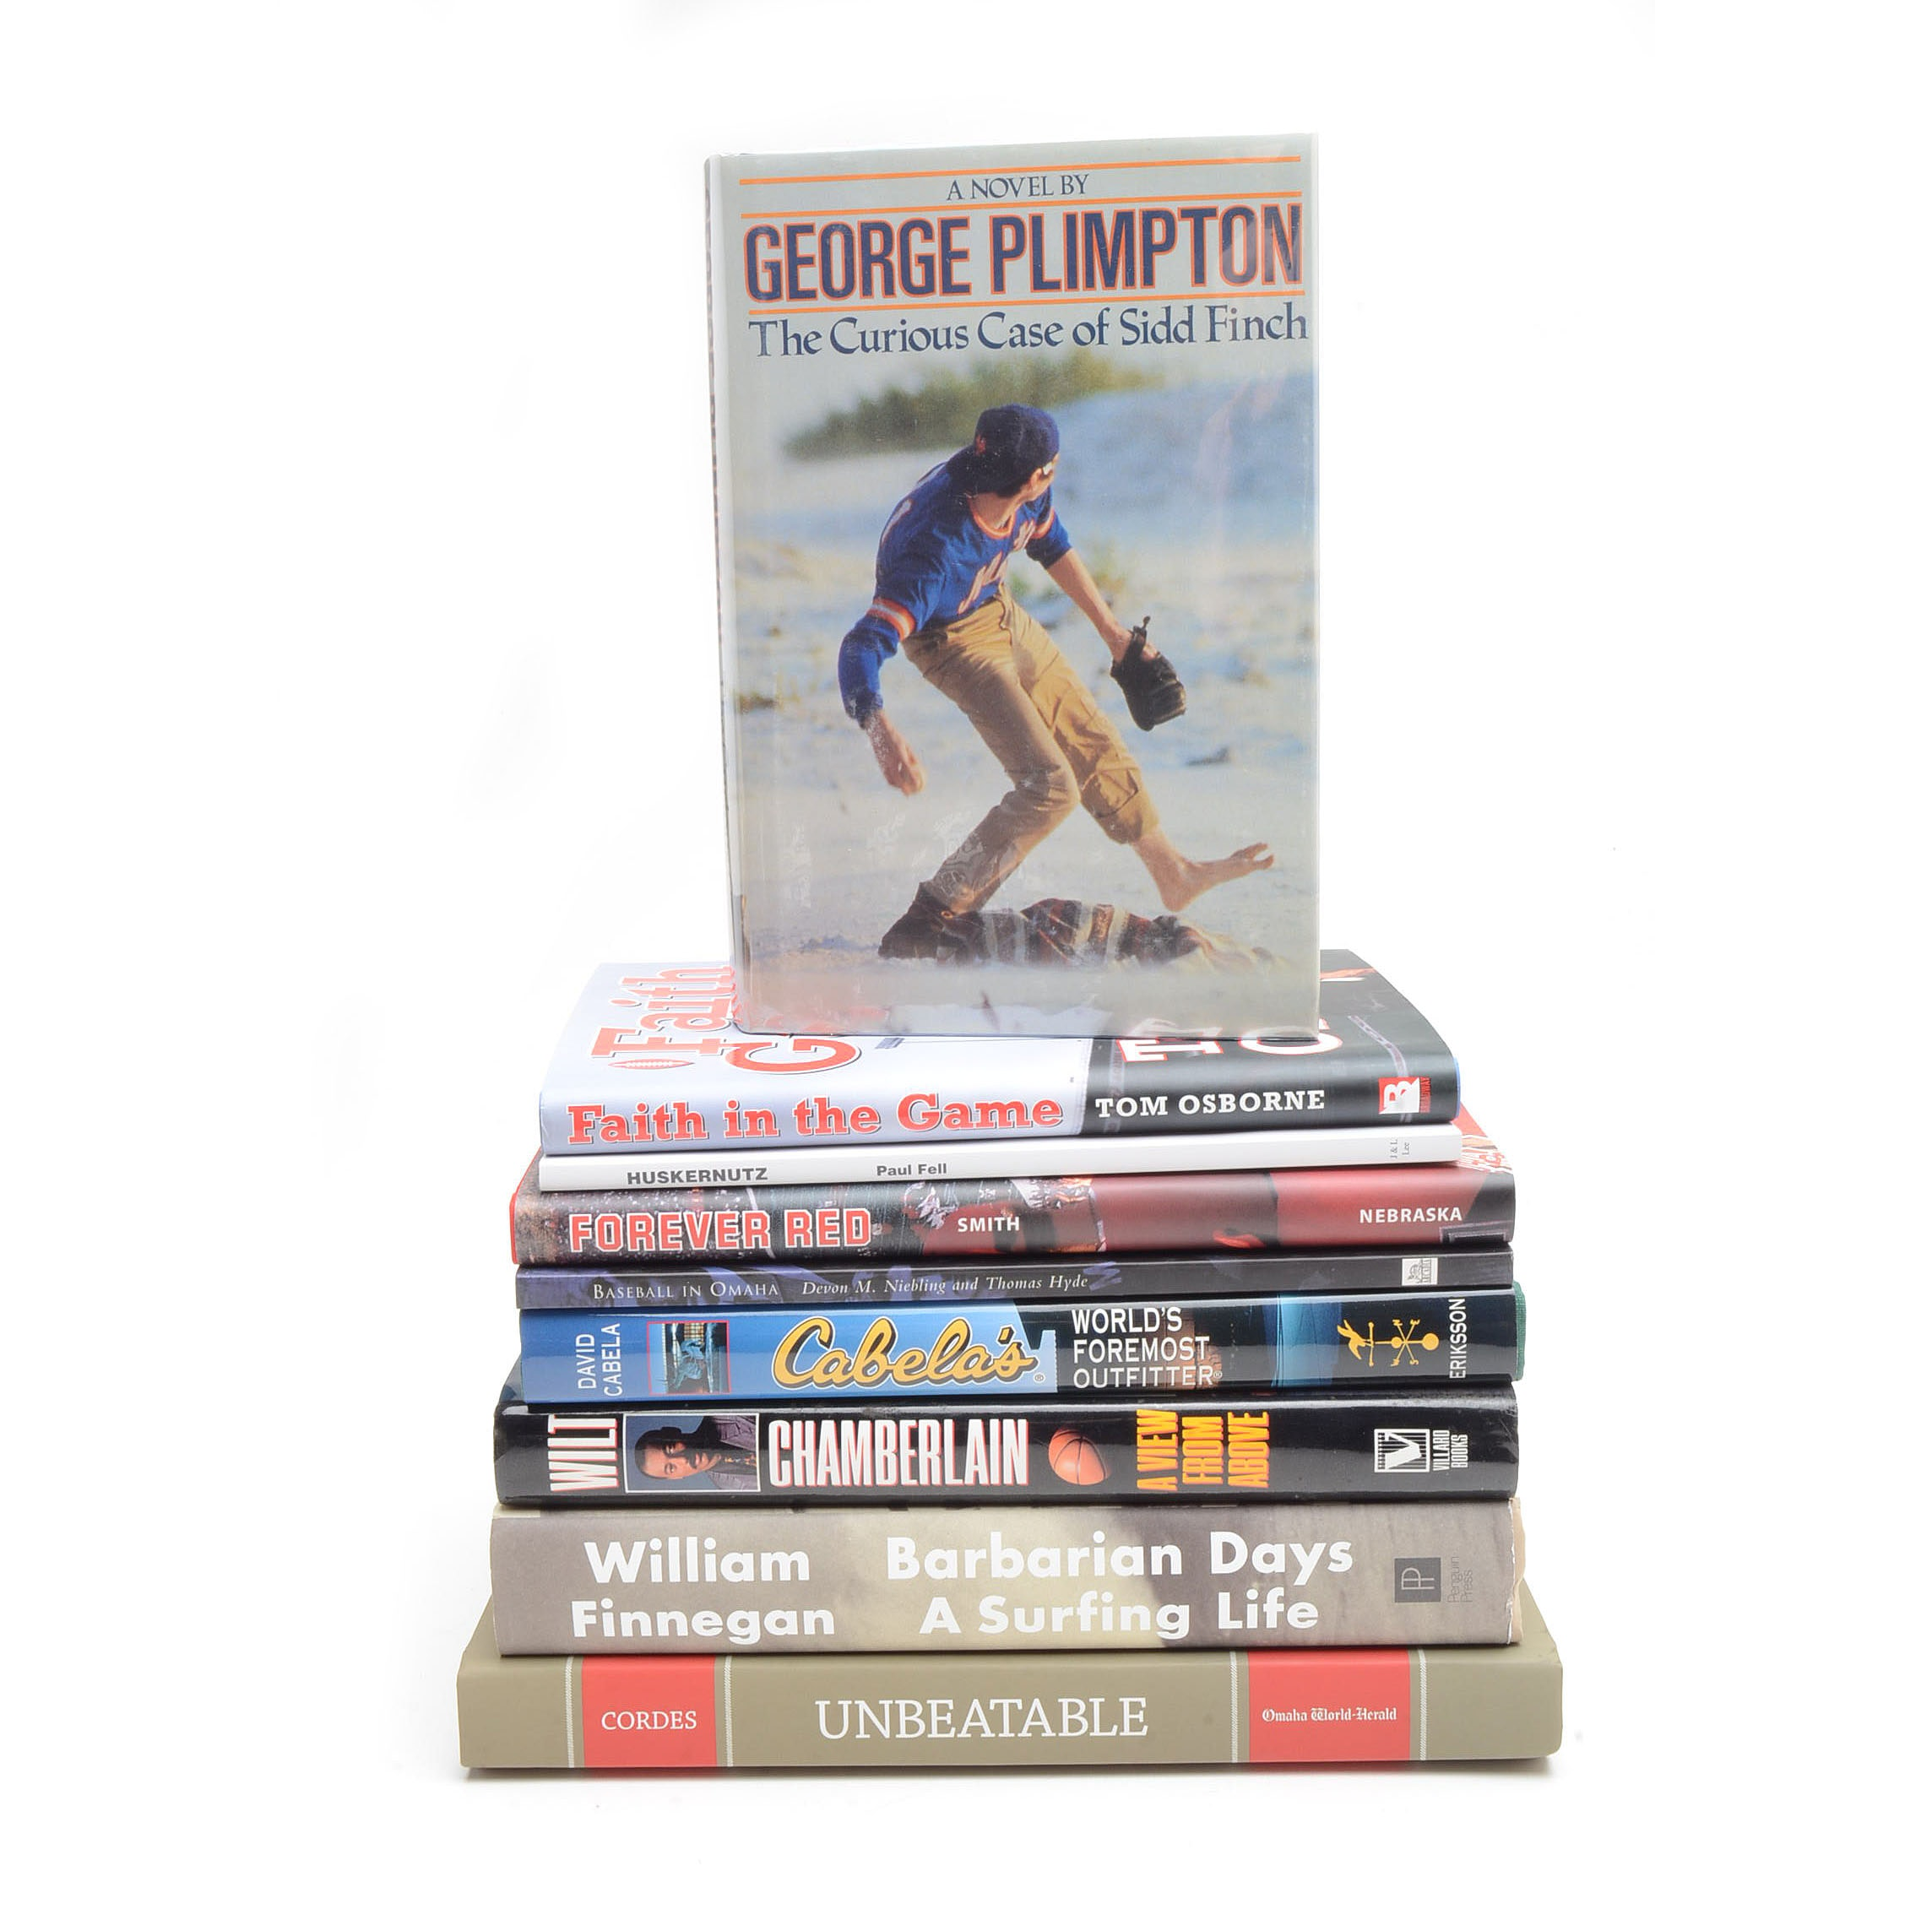 Collection of Sports Books including Signed Wilt Chamberlain Memoir